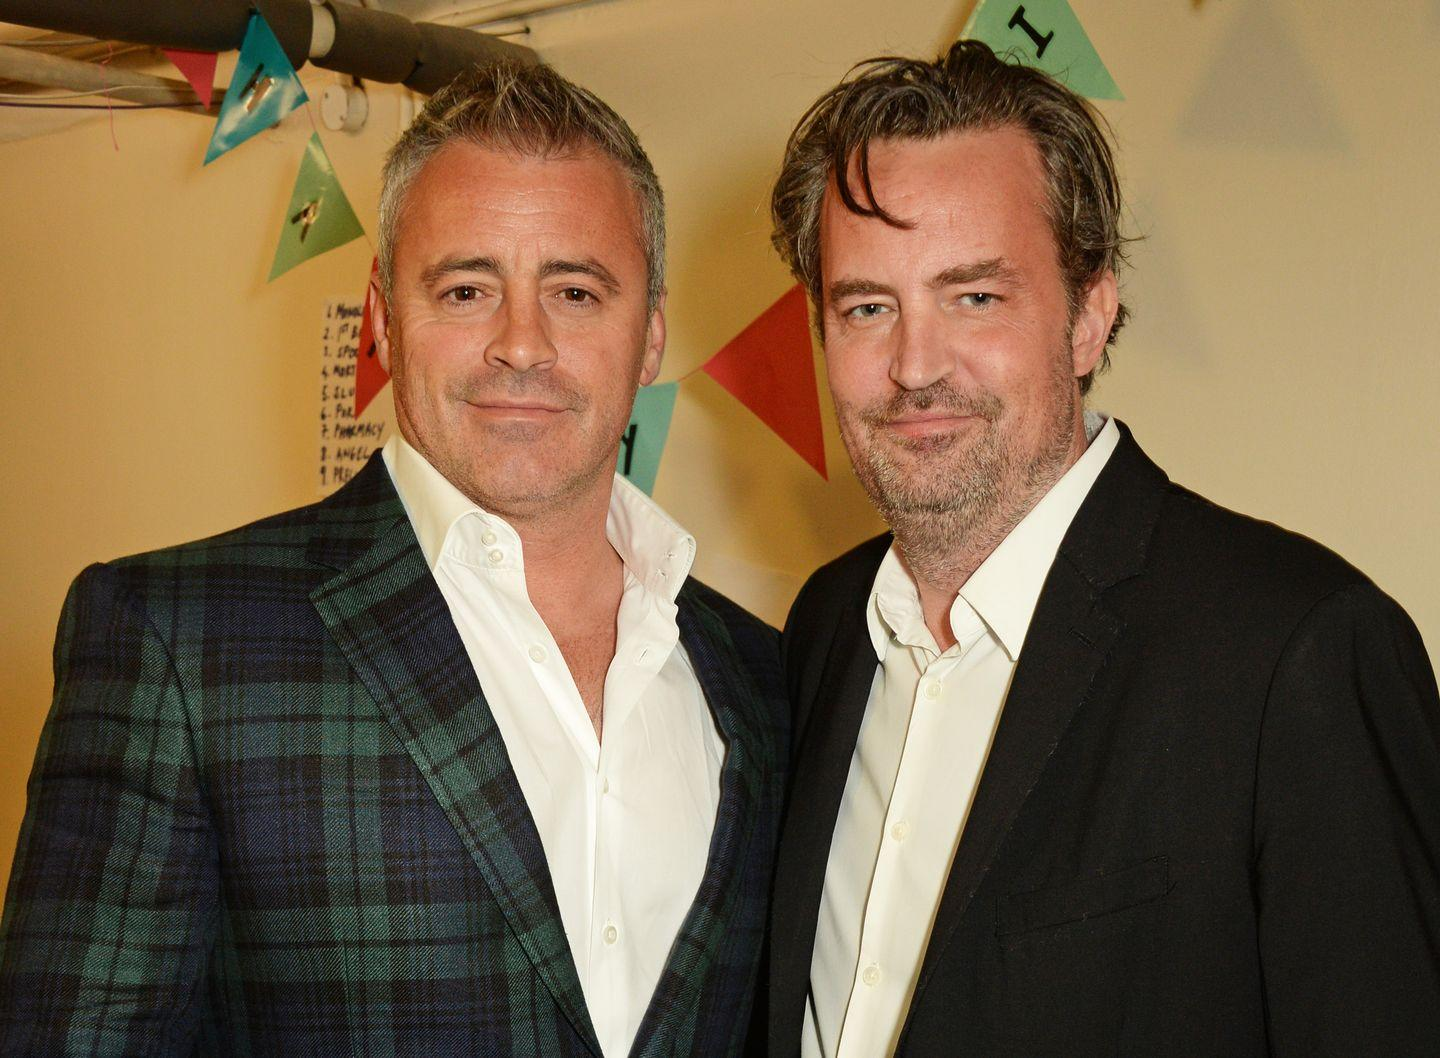 <p>Matt LeBlanc visits Matthew Perry backstage after a performance of 'The End Of Longing', Matthew's playwriting debut, at the Playhouse Theatre in London.</p>